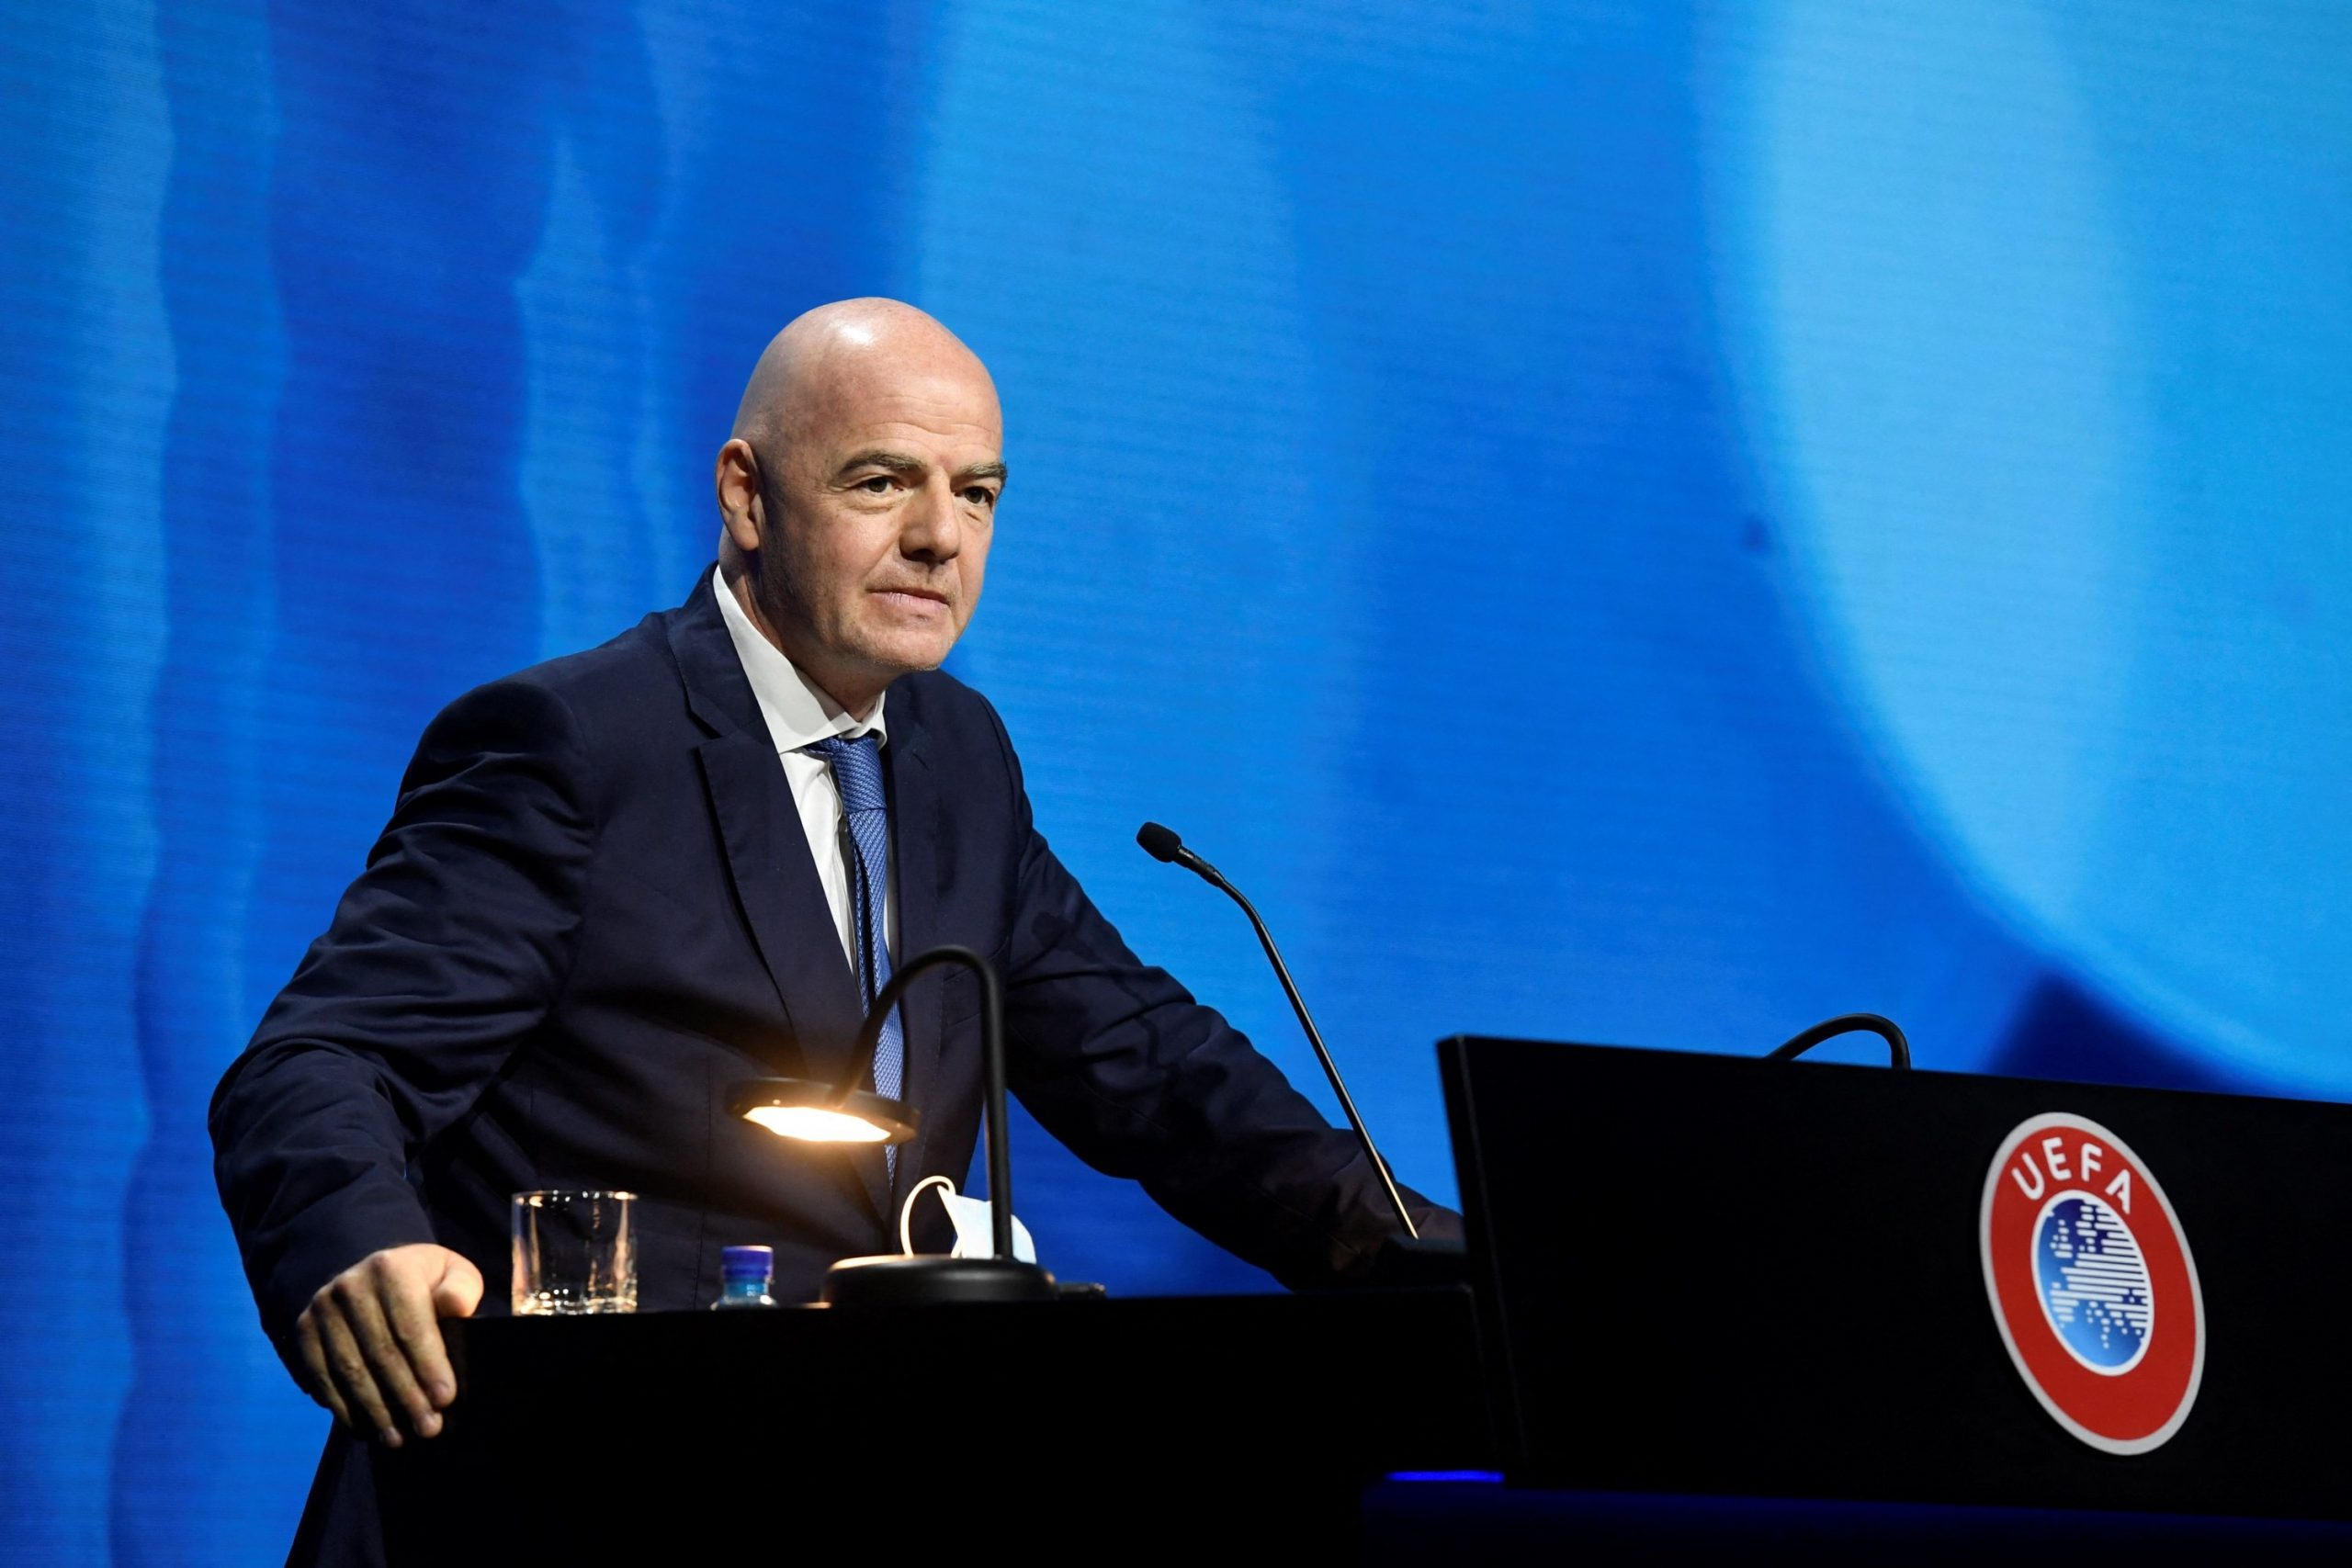 FIFA President Calls on EU Federations to Release Players for World Cup Qualifiers